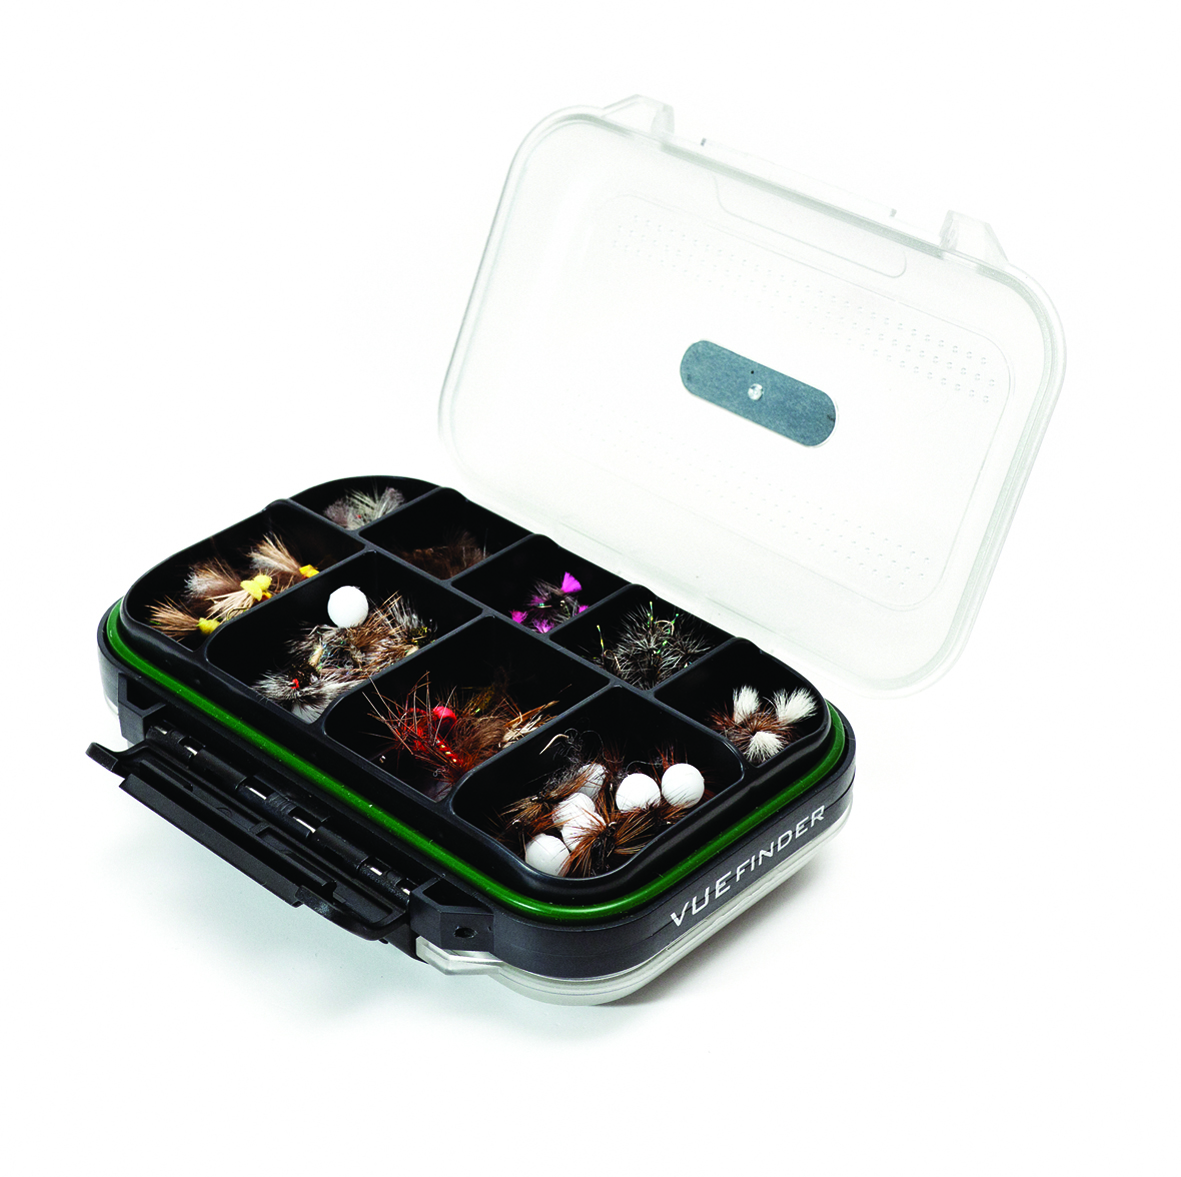 Wychwood dryfly s compartment fly boxes glasgow angling for Fly fishing box